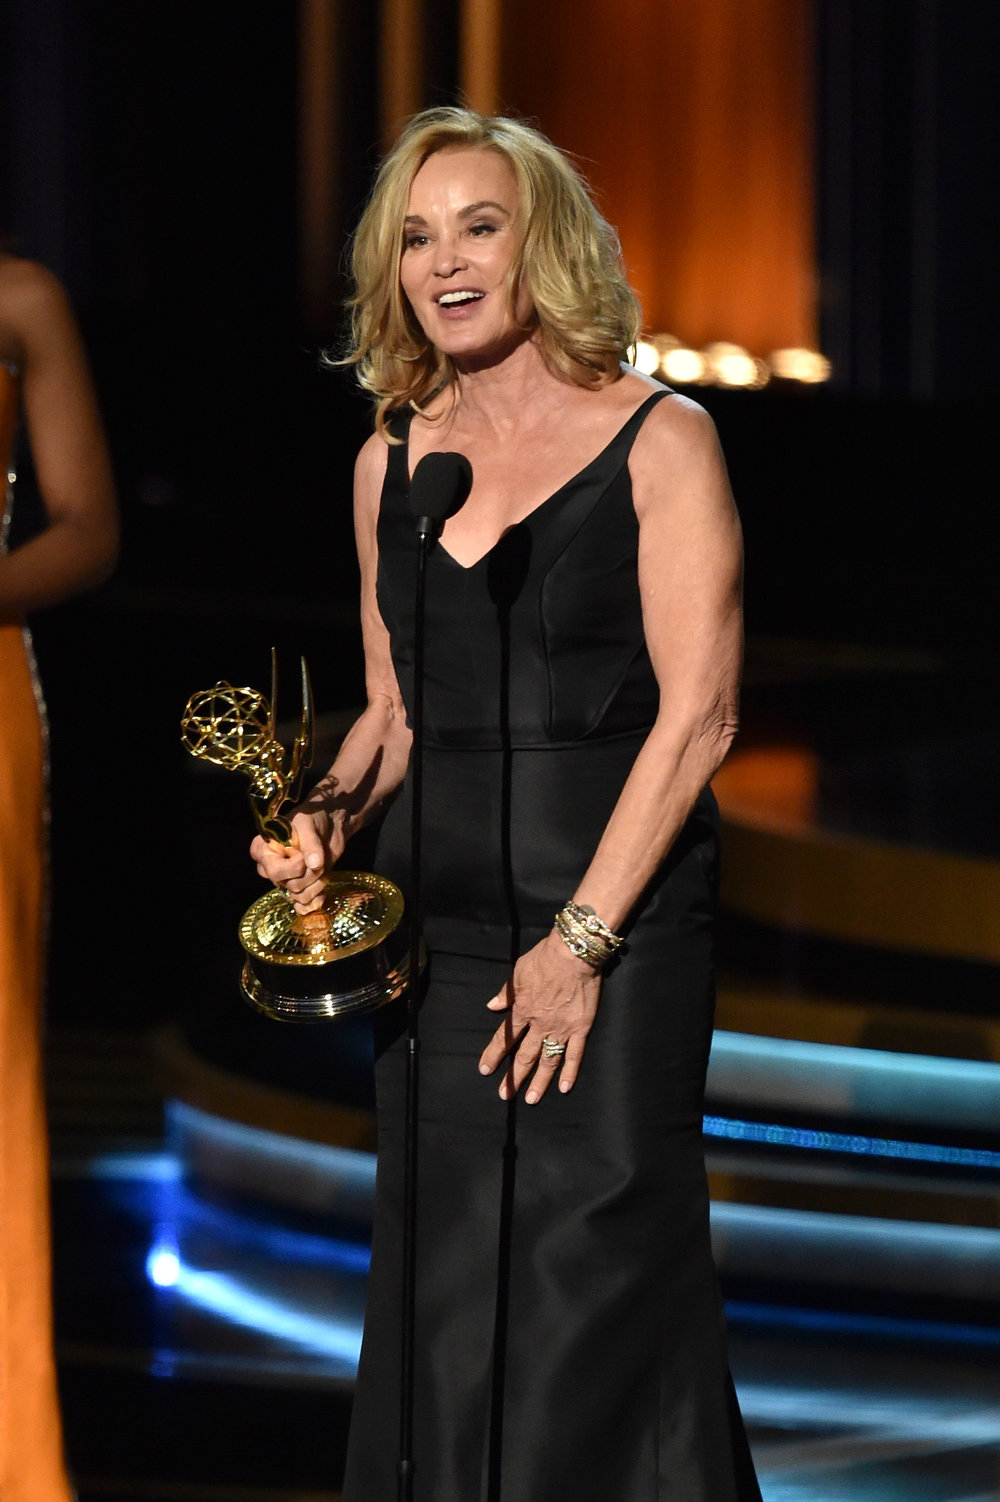 . Actress Jessica Lange accepts Outstanding Lead Actress in a Miniseries or Movie for \'American Horror Story: Coven\' onstage at the 66th Annual Primetime Emmy Awards held at Nokia Theatre L.A. Live on August 25, 2014 in Los Angeles, California.  (Photo by Kevin Winter/Getty Images)